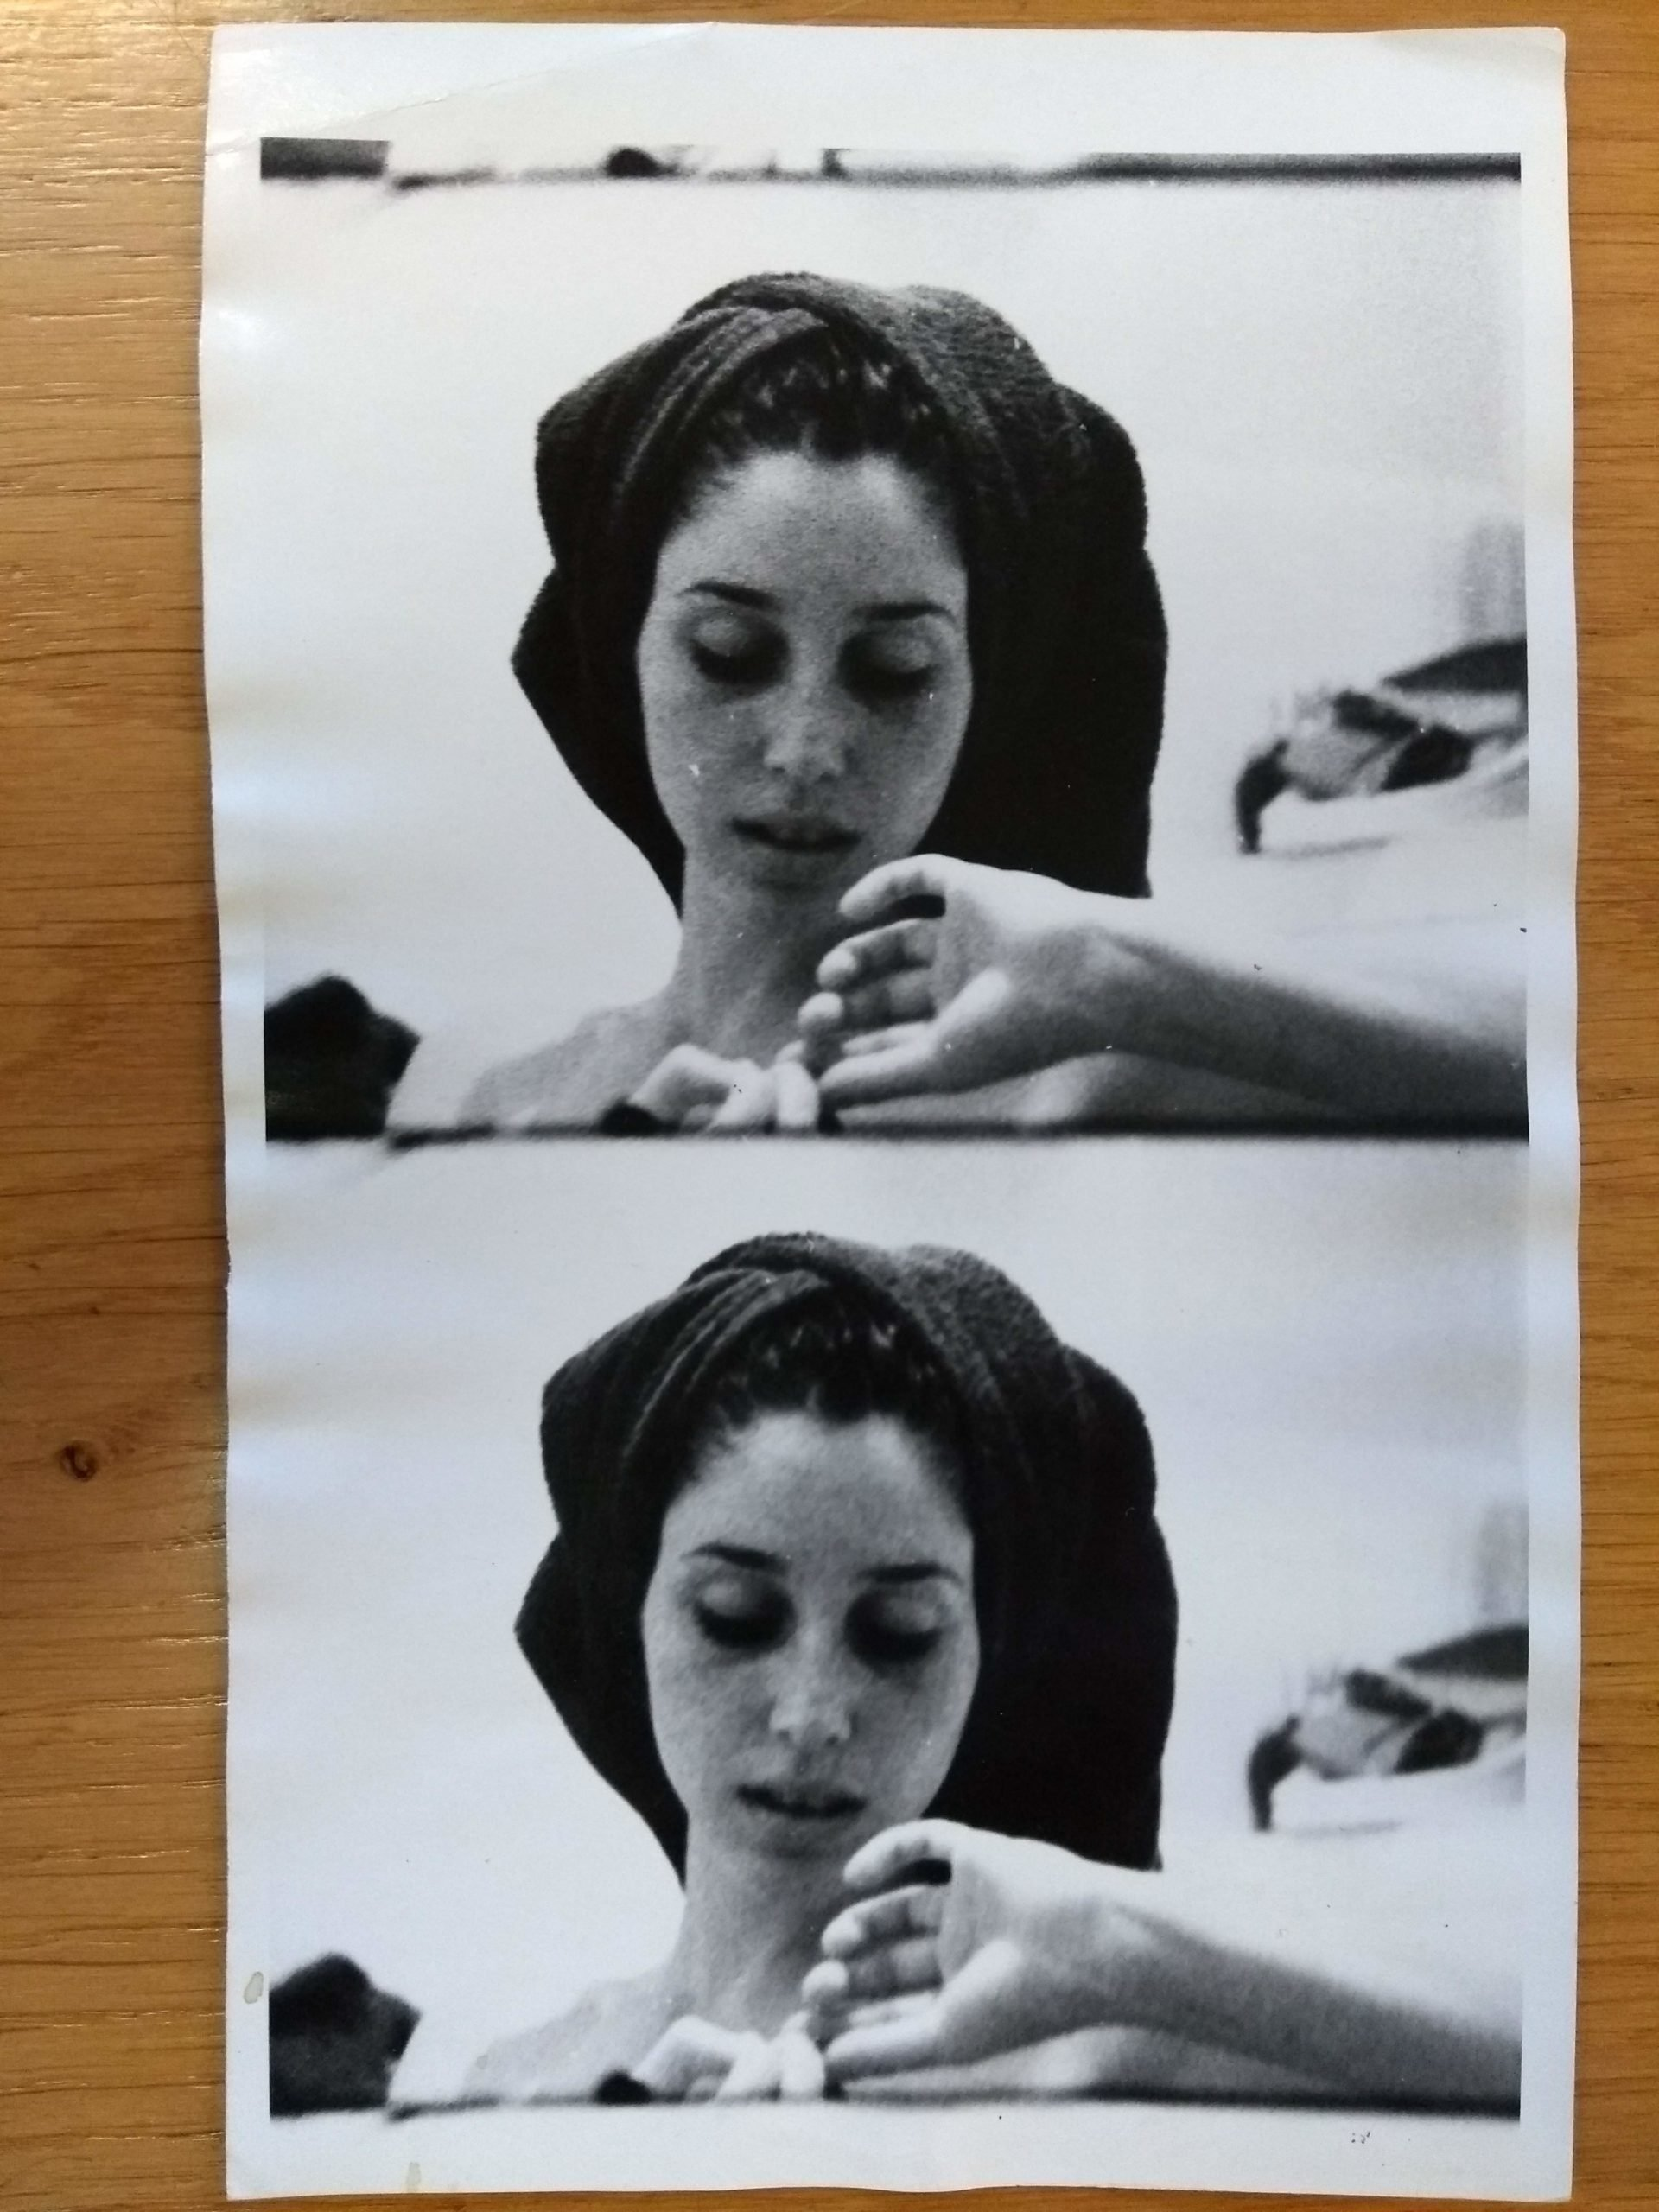 A B&W split-frame photograph of a white woman pinching nails with her hair wrapped with a towel. The same image in each frame.